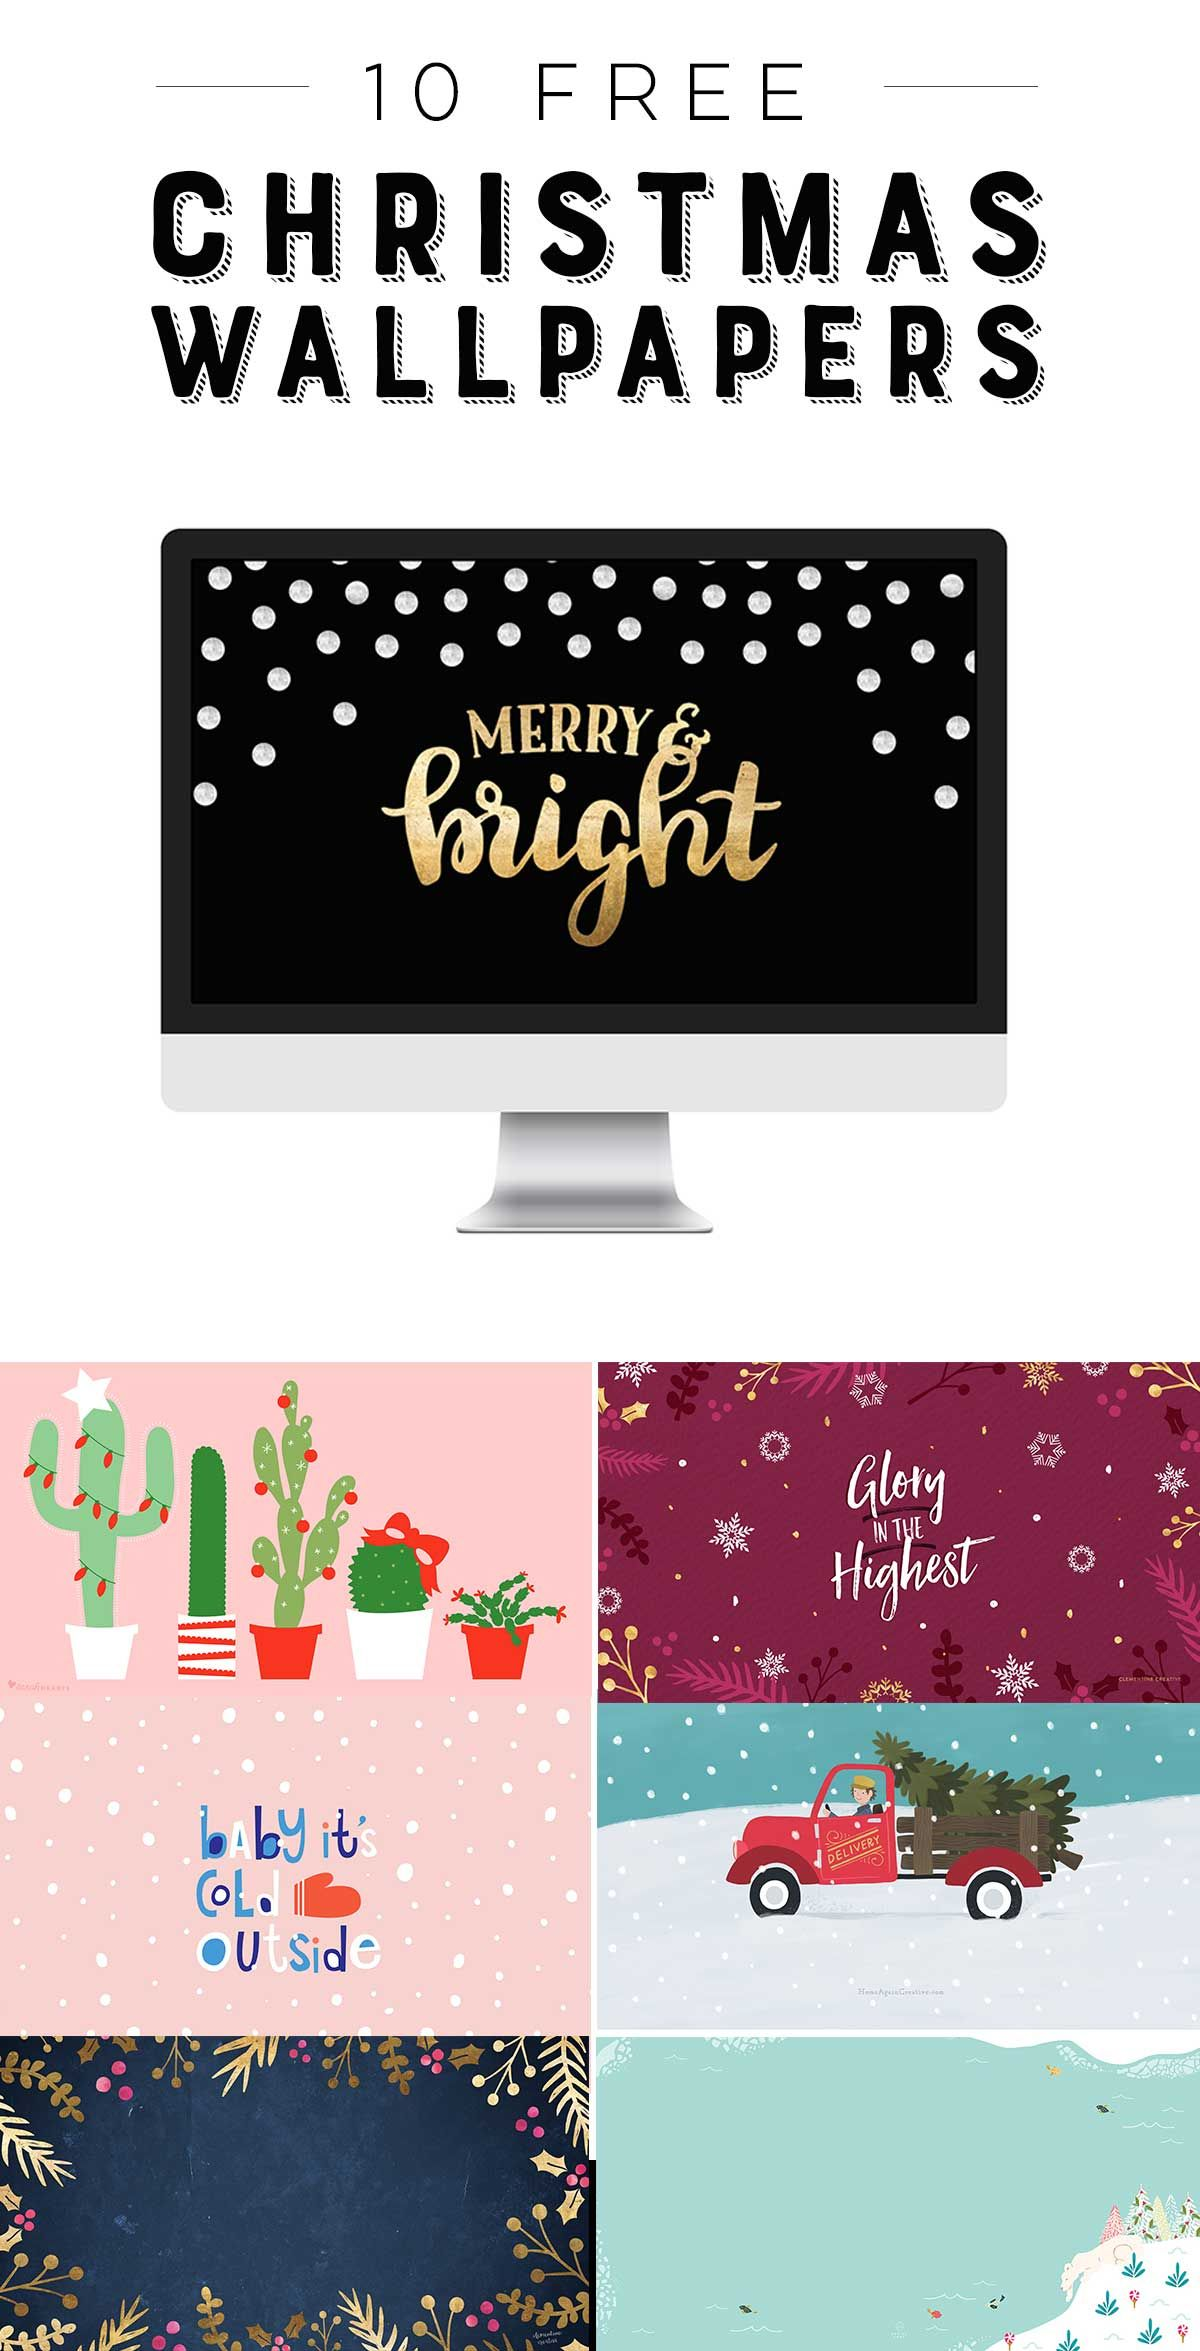 Free Cute Modern Christmas Wallpapers For Your Desktop And Phone Clementine Creative Free Christmas Desktop Wallpaper Christmas Desktop Wallpaper Christmas Wallpaper